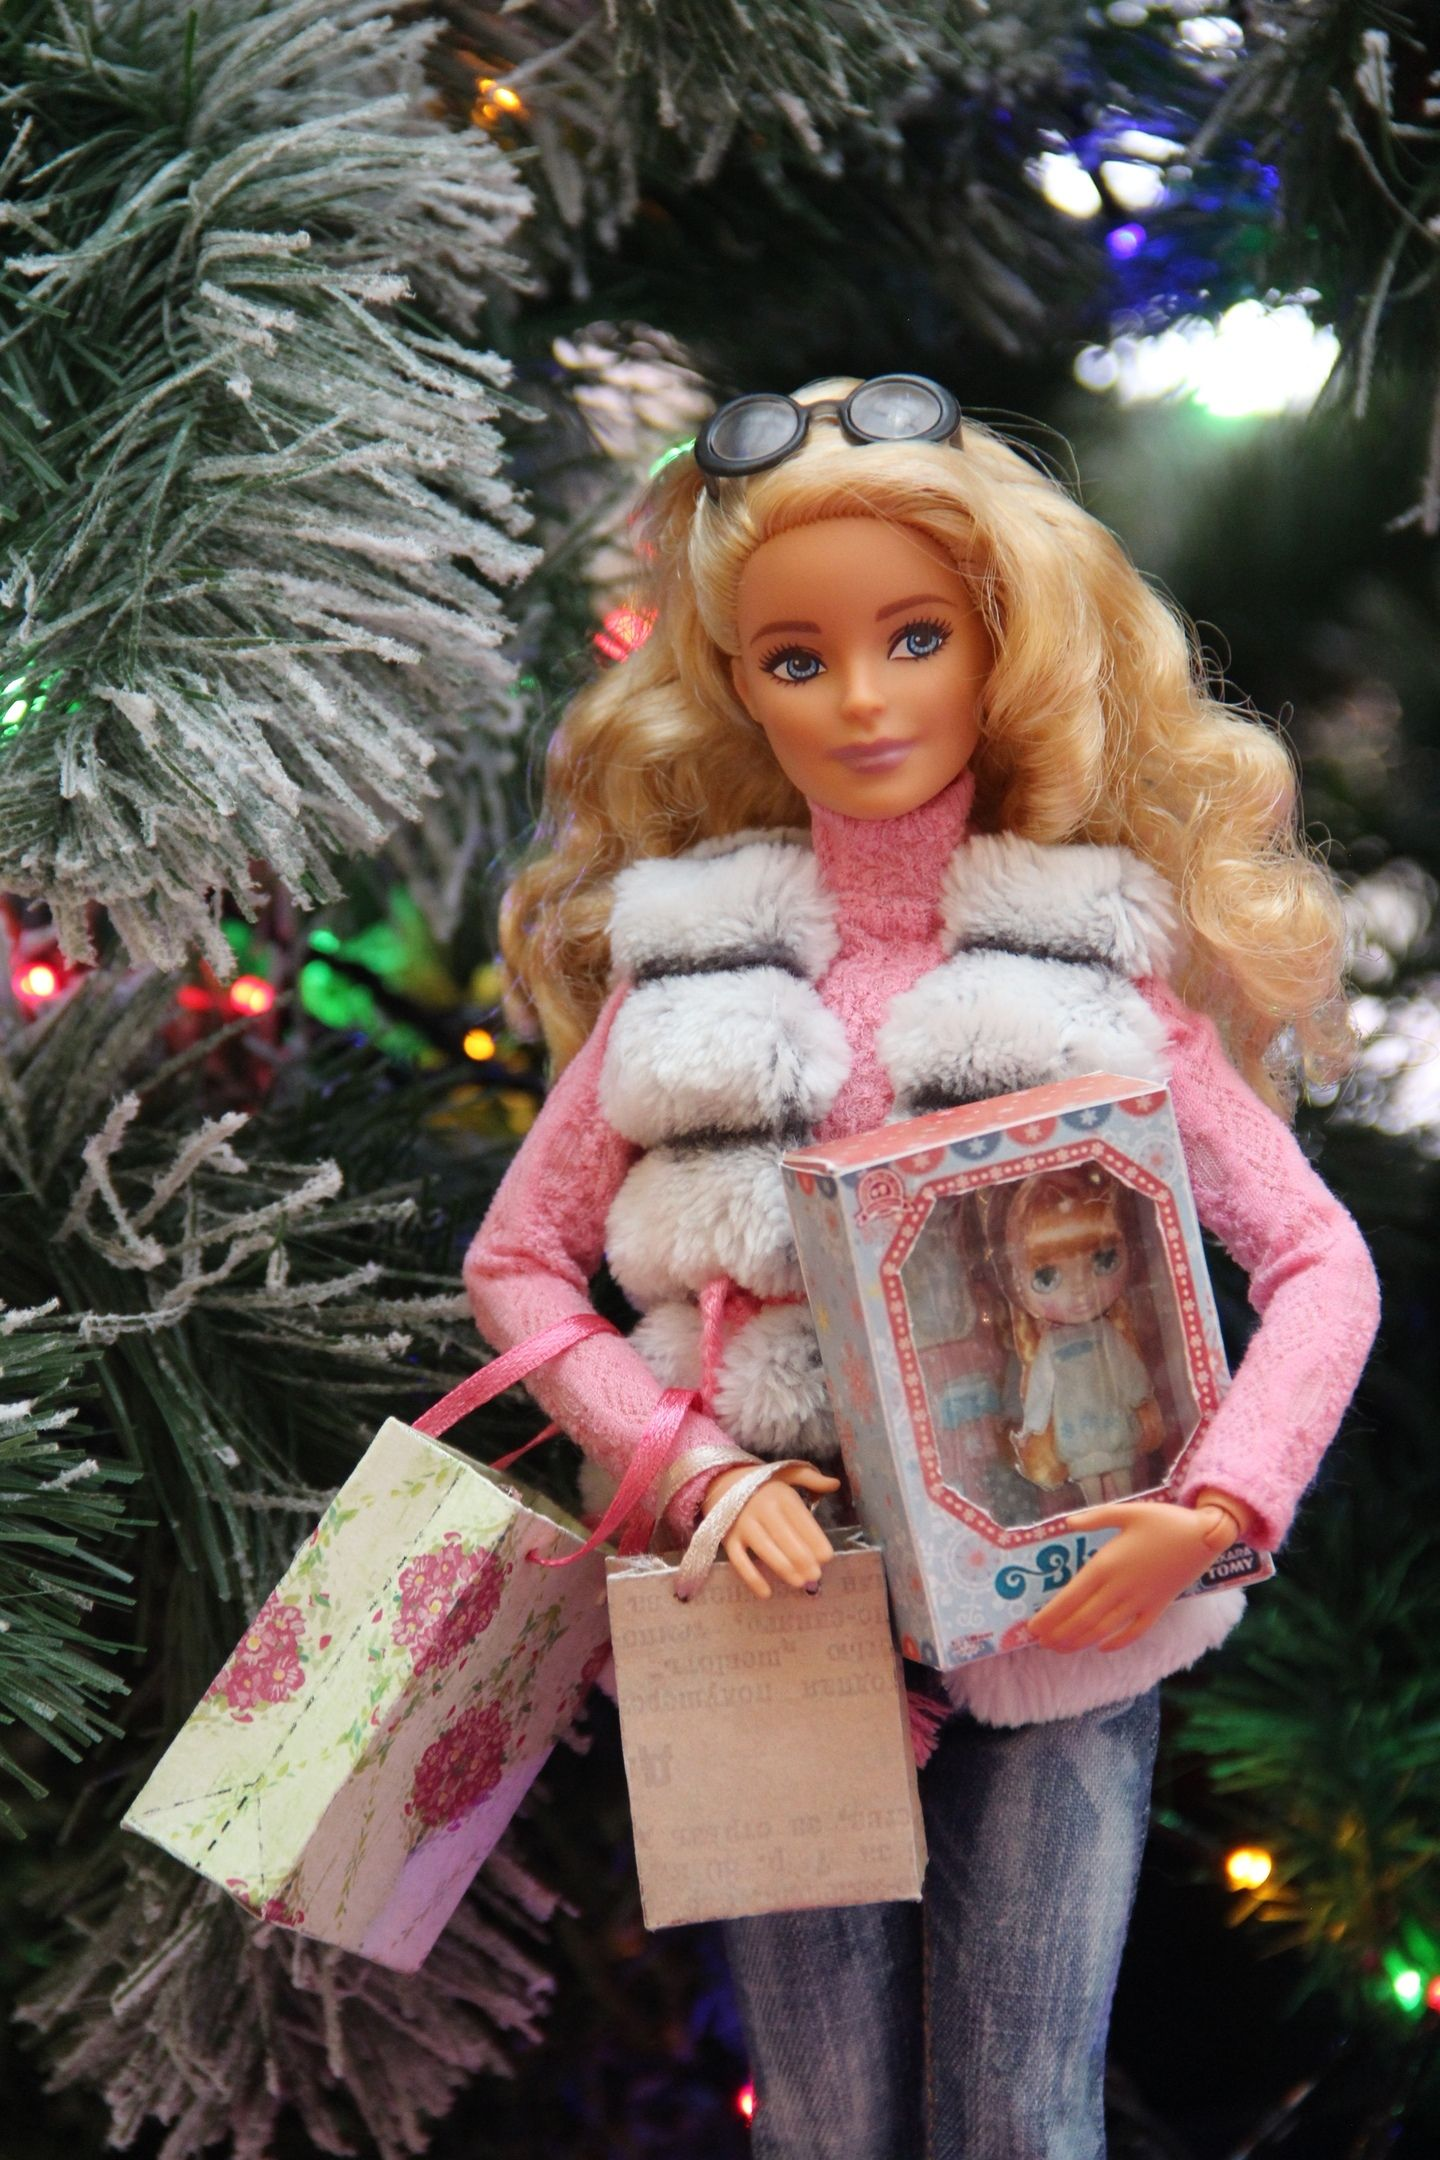 Astores On Christmas Day Near Me 2020 Pin by Gabriela Valderrama on Dolls in winter in 2020 | Barbie